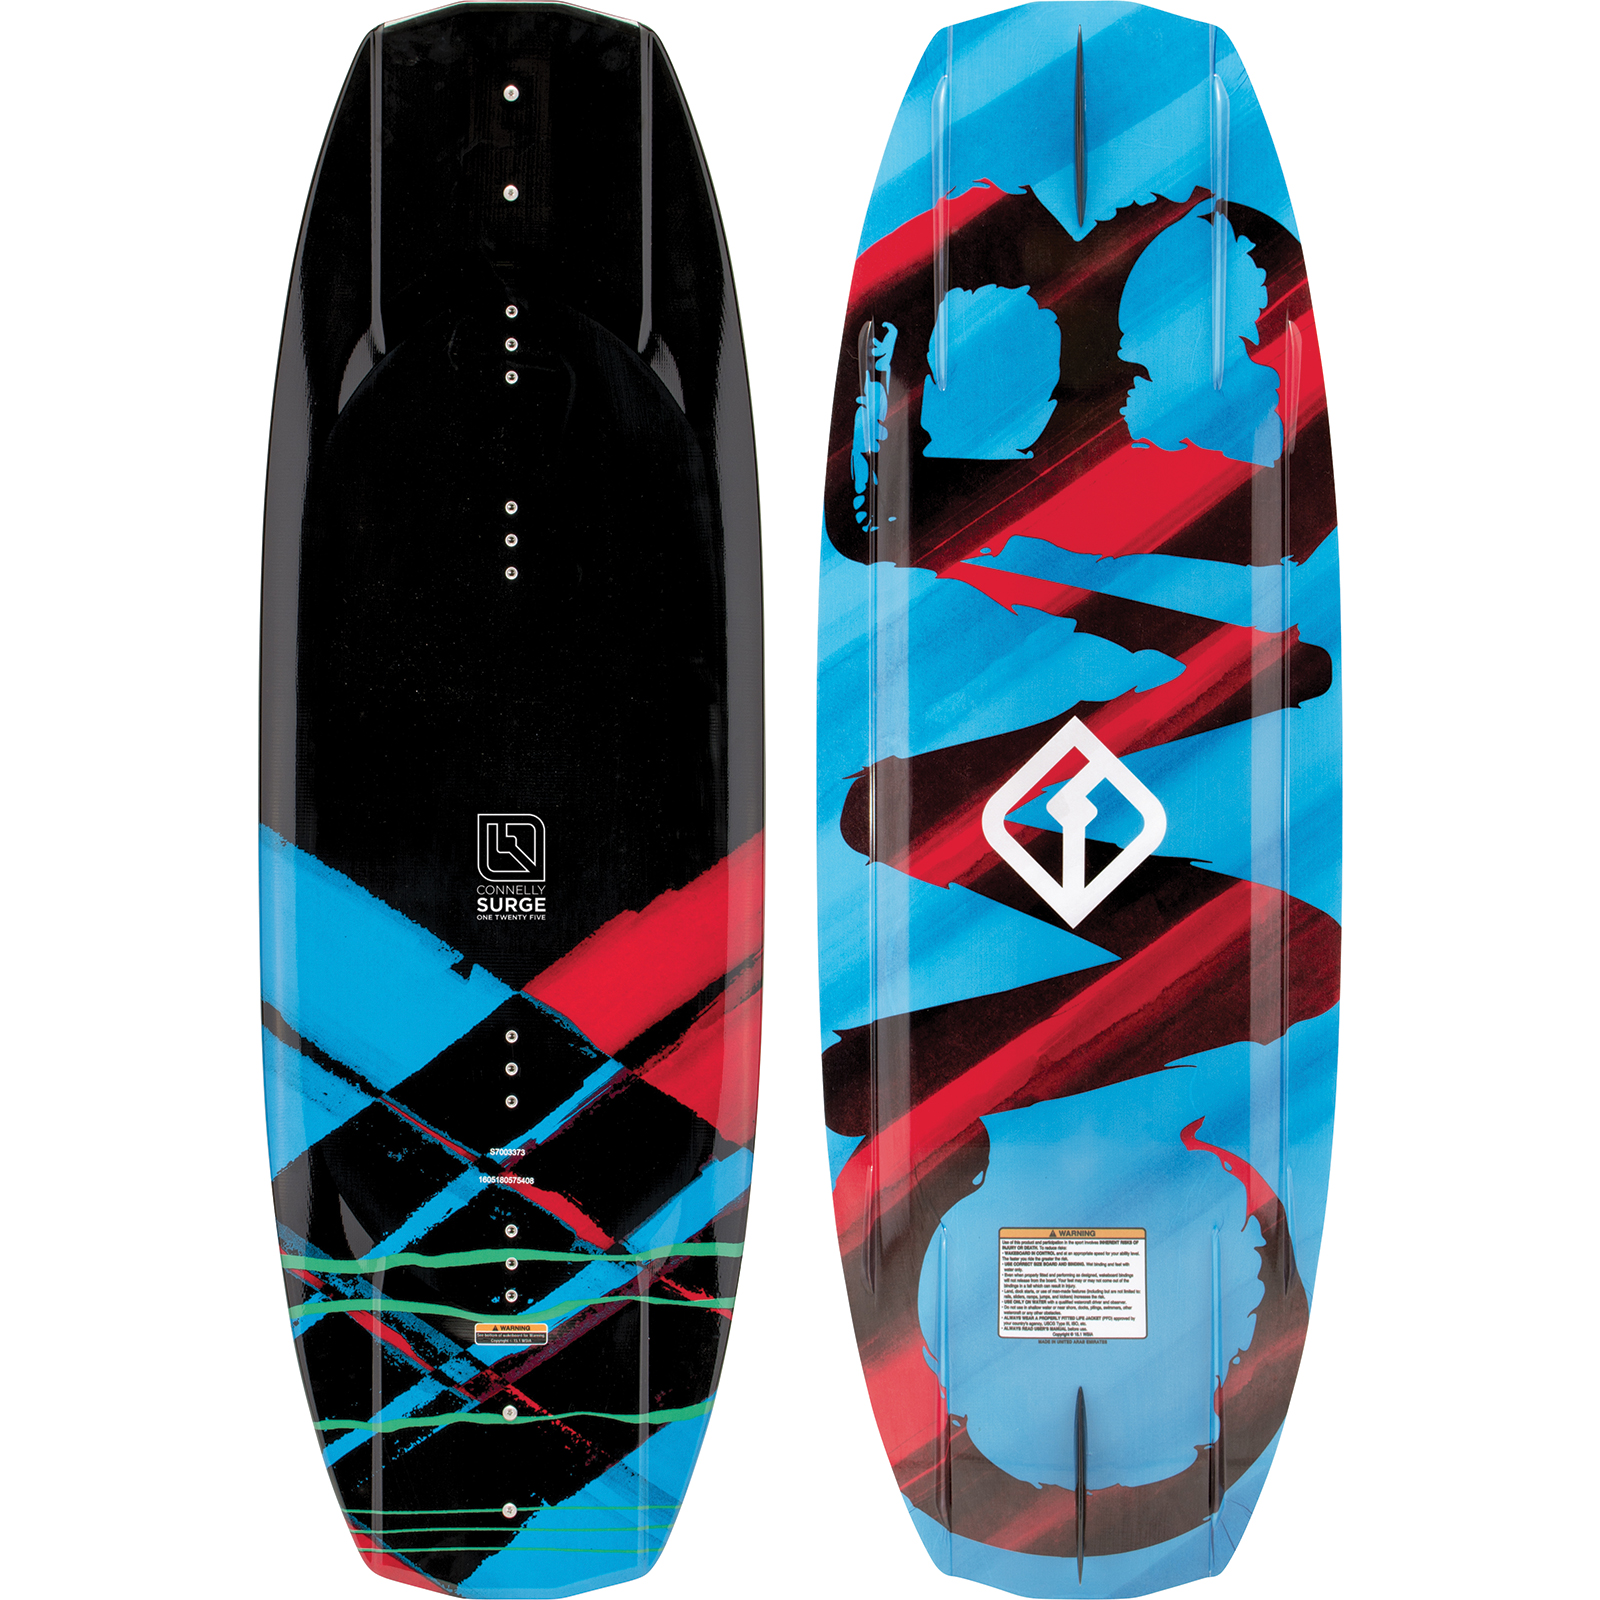 SURGE 125 JR. WAKEBOARD CONNELLY 2018